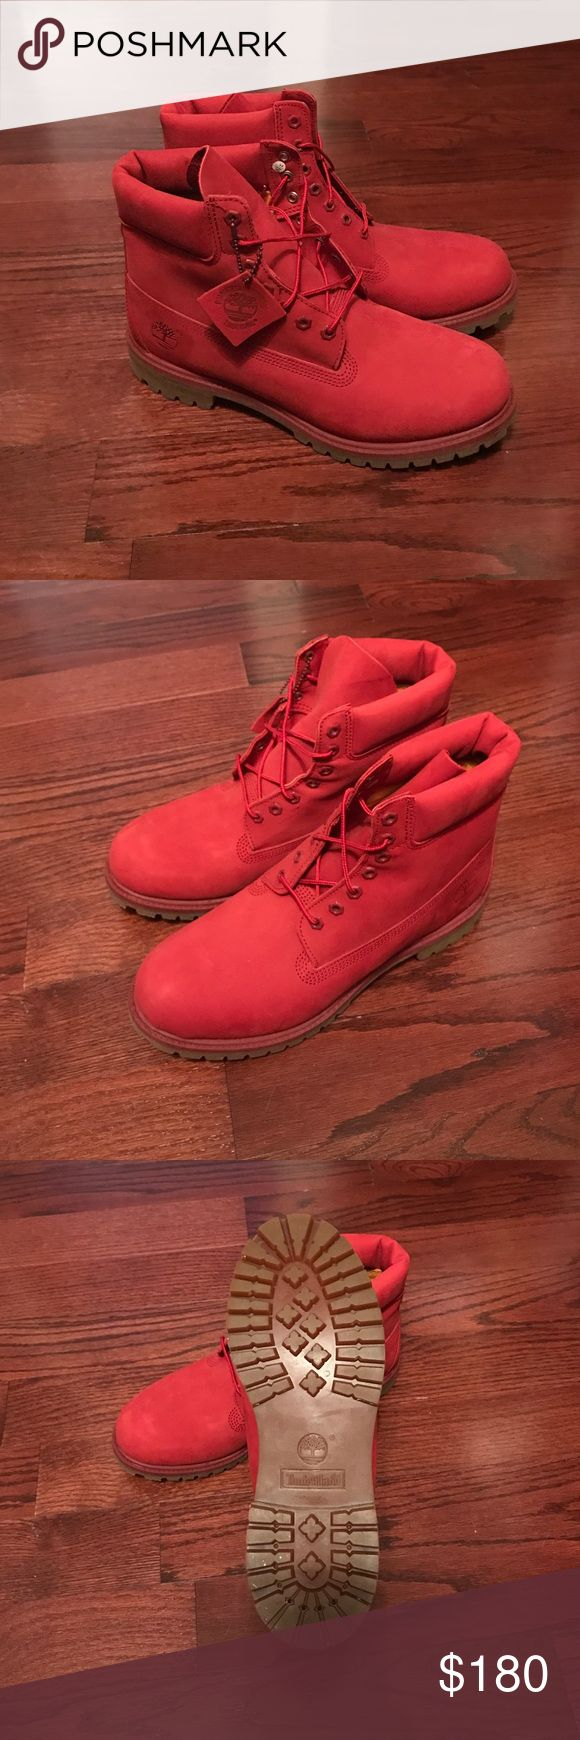 "6"" Timberland ""Red"" Brand New Red Timberland. Released last year Feb 2016. Never worn. Still smells new. Size 13. 100% Authentic. No receipt No box. Timberland Shoes Boots"